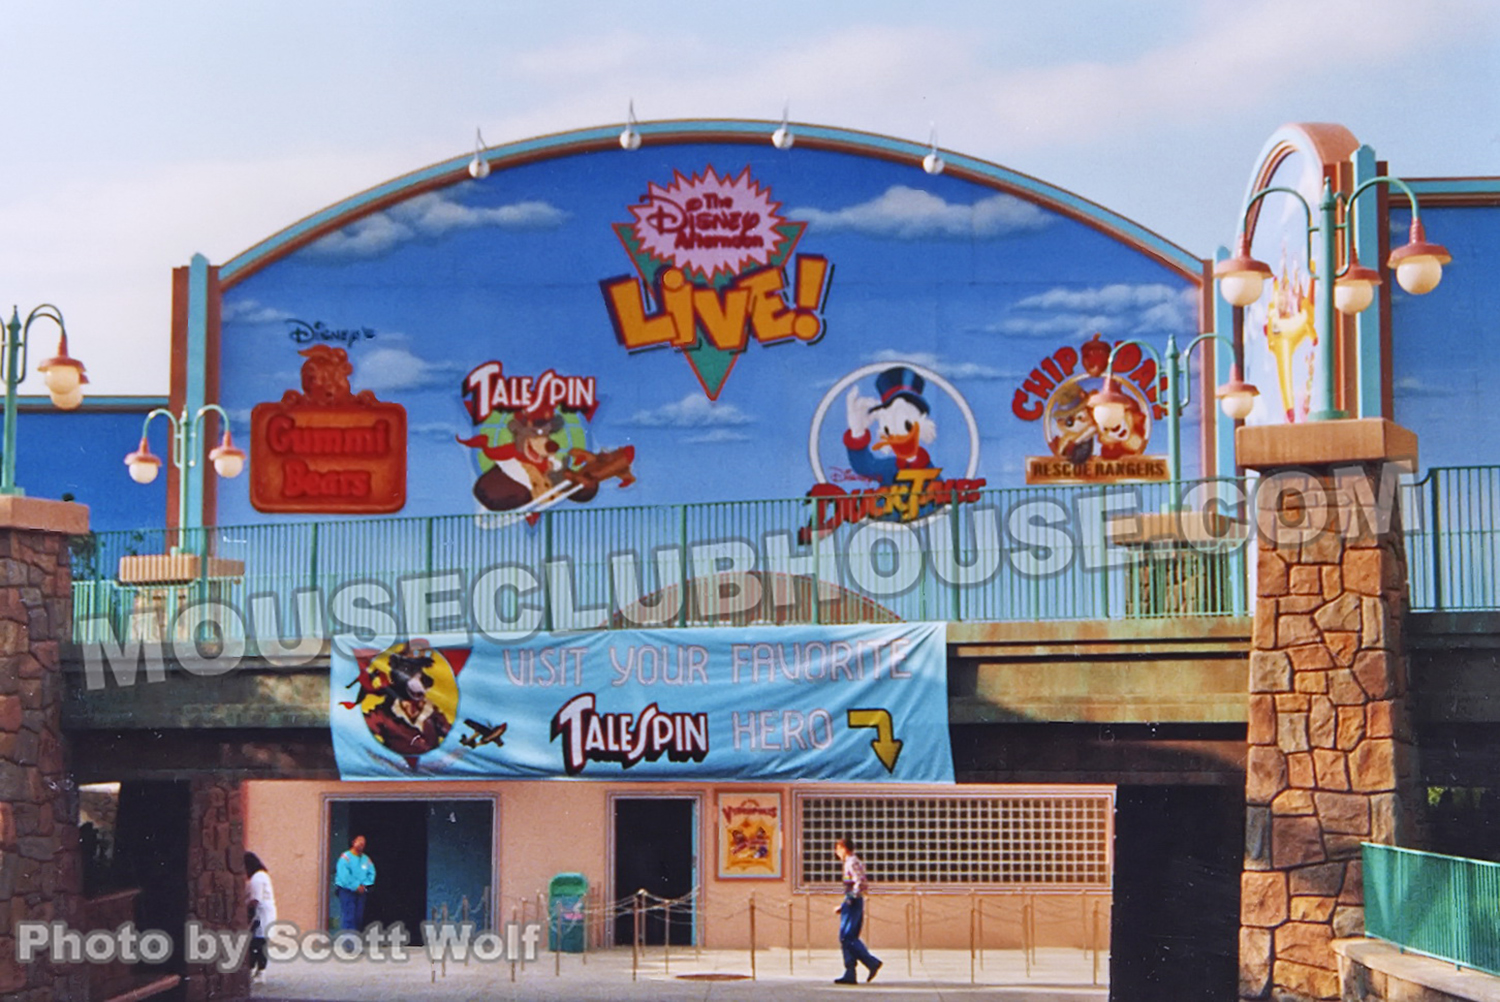 disney afternoon at disneyland mouse clubhouse what is now the entrance to mickey s toontown in disneyland as it appeared in 1991